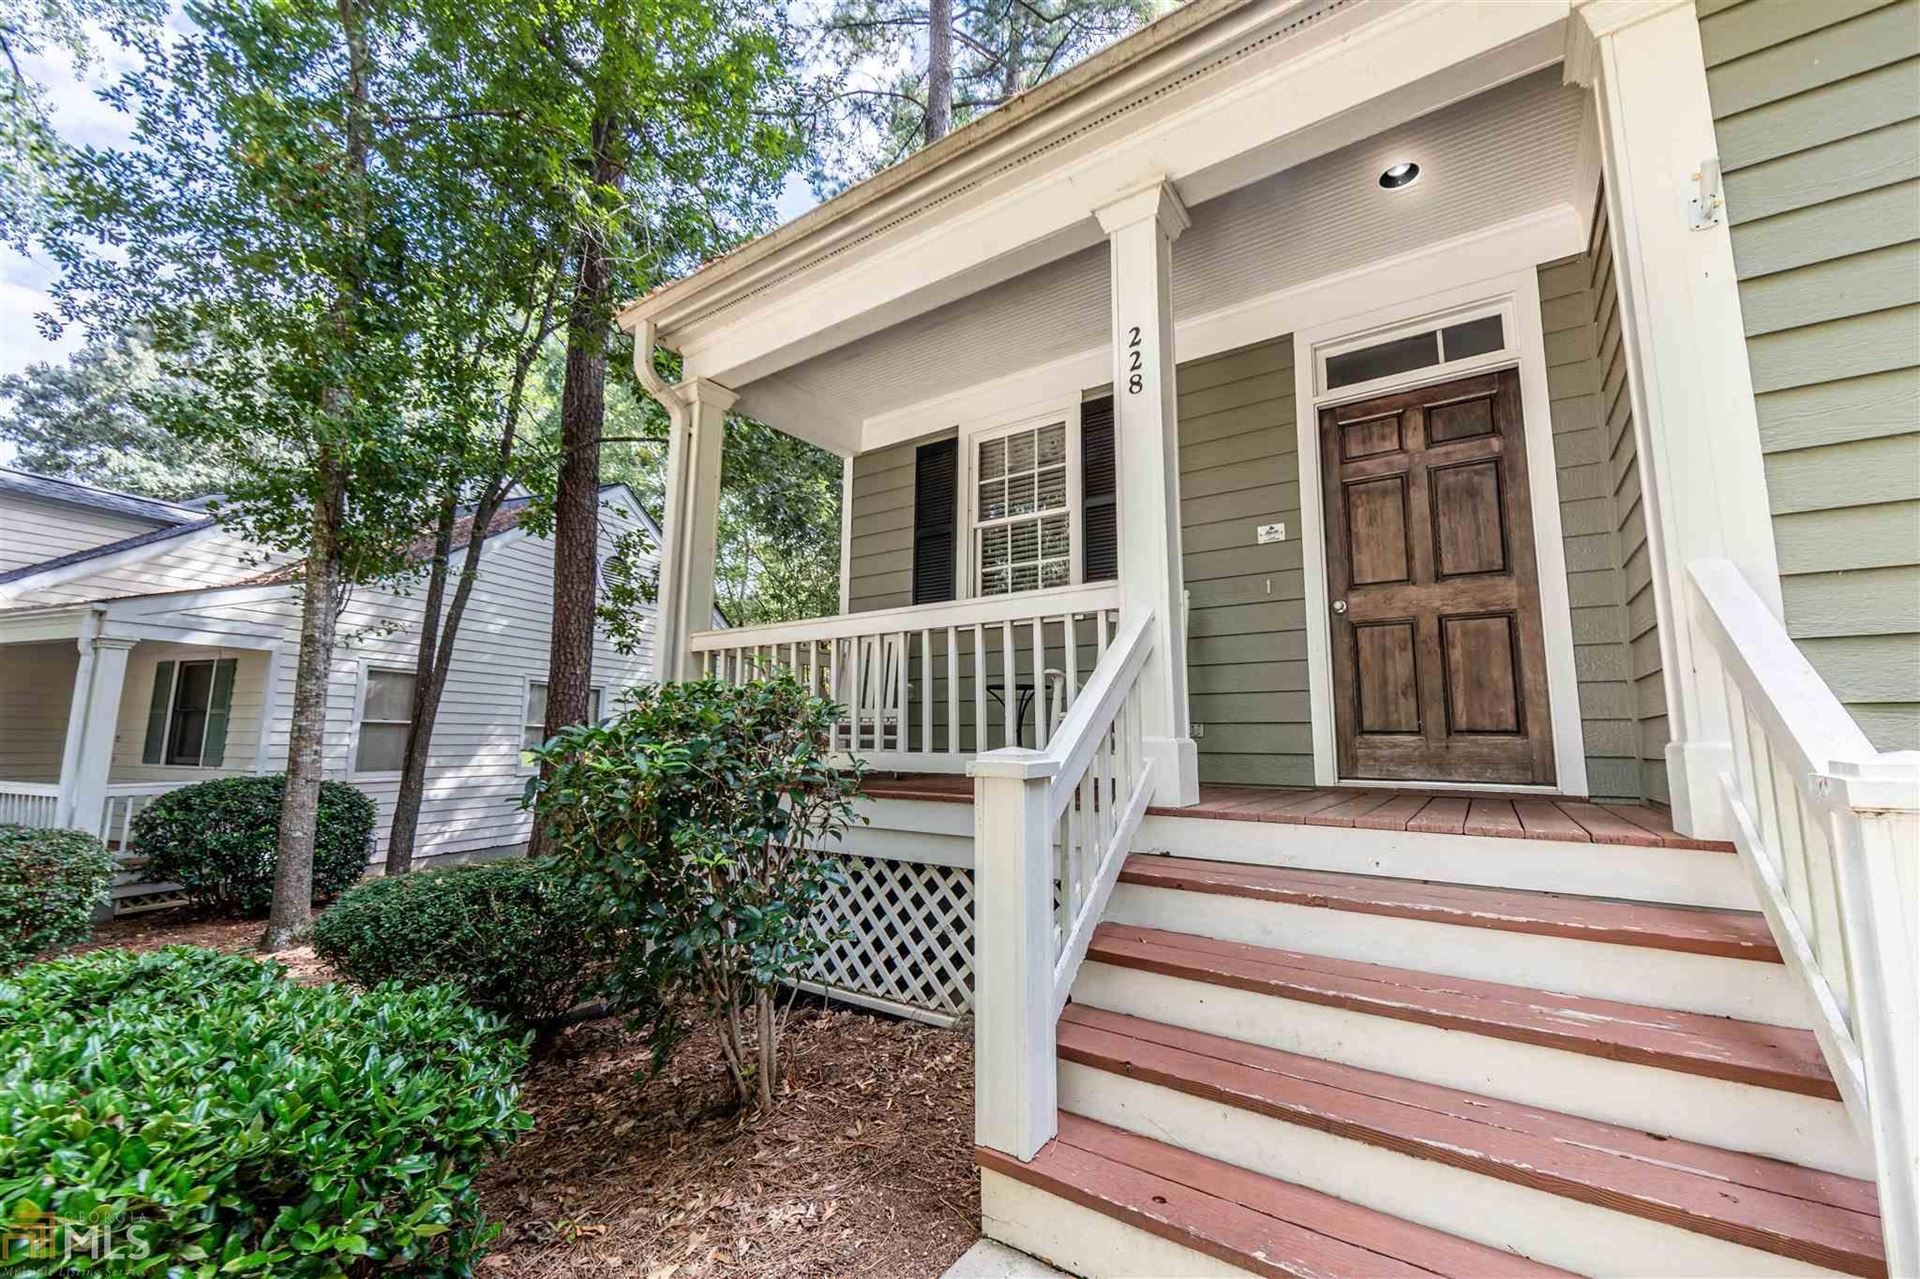 228 Beech Haven Ln, Eatonton, GA 31024 - MLS#: 8870372